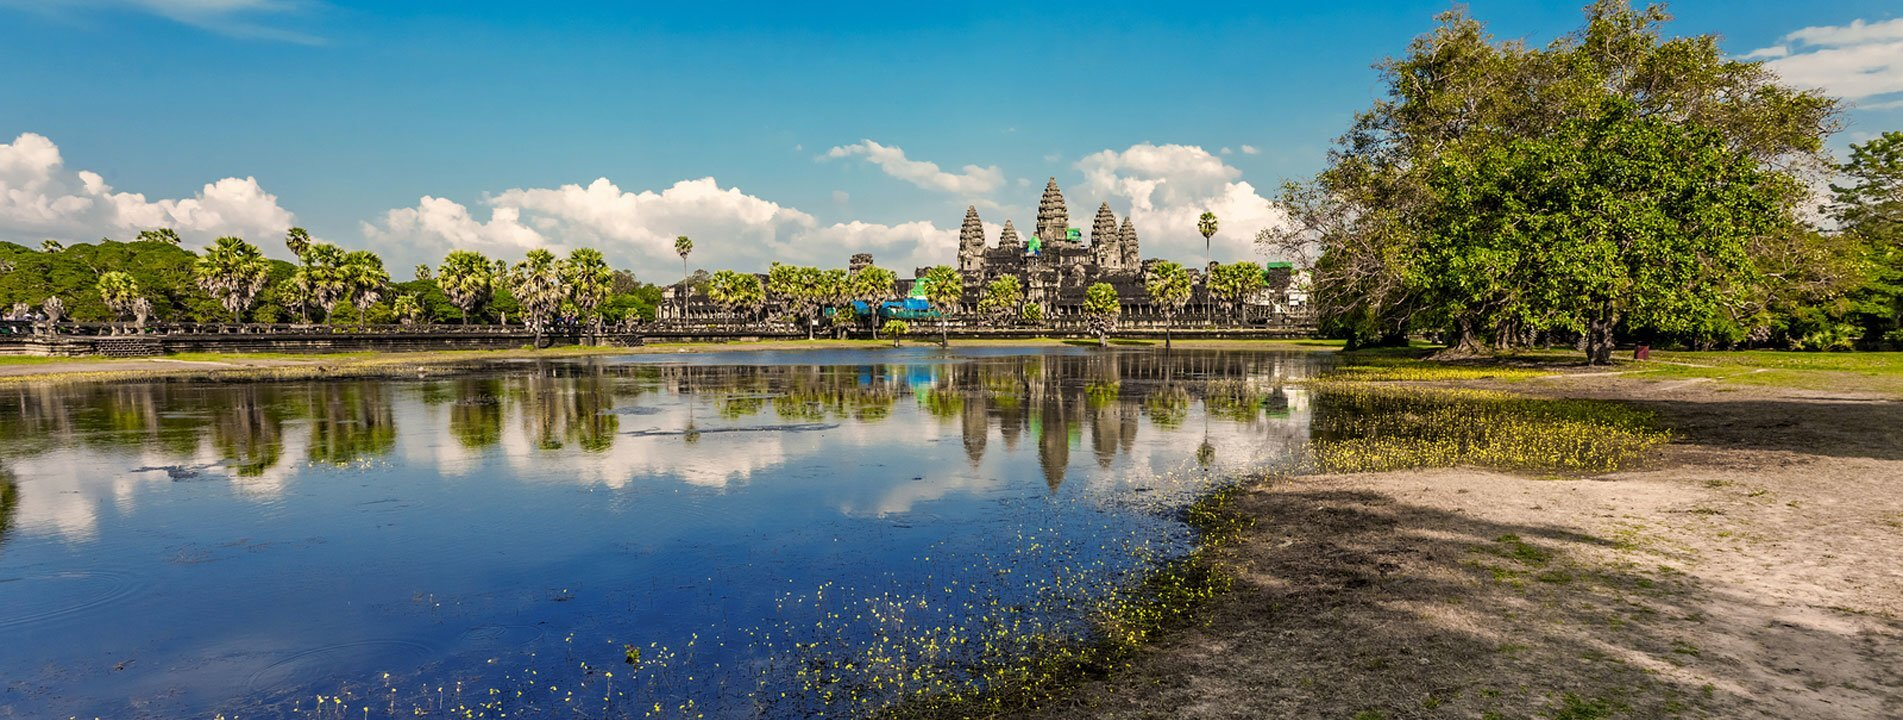 Angkor Wat from the Moat